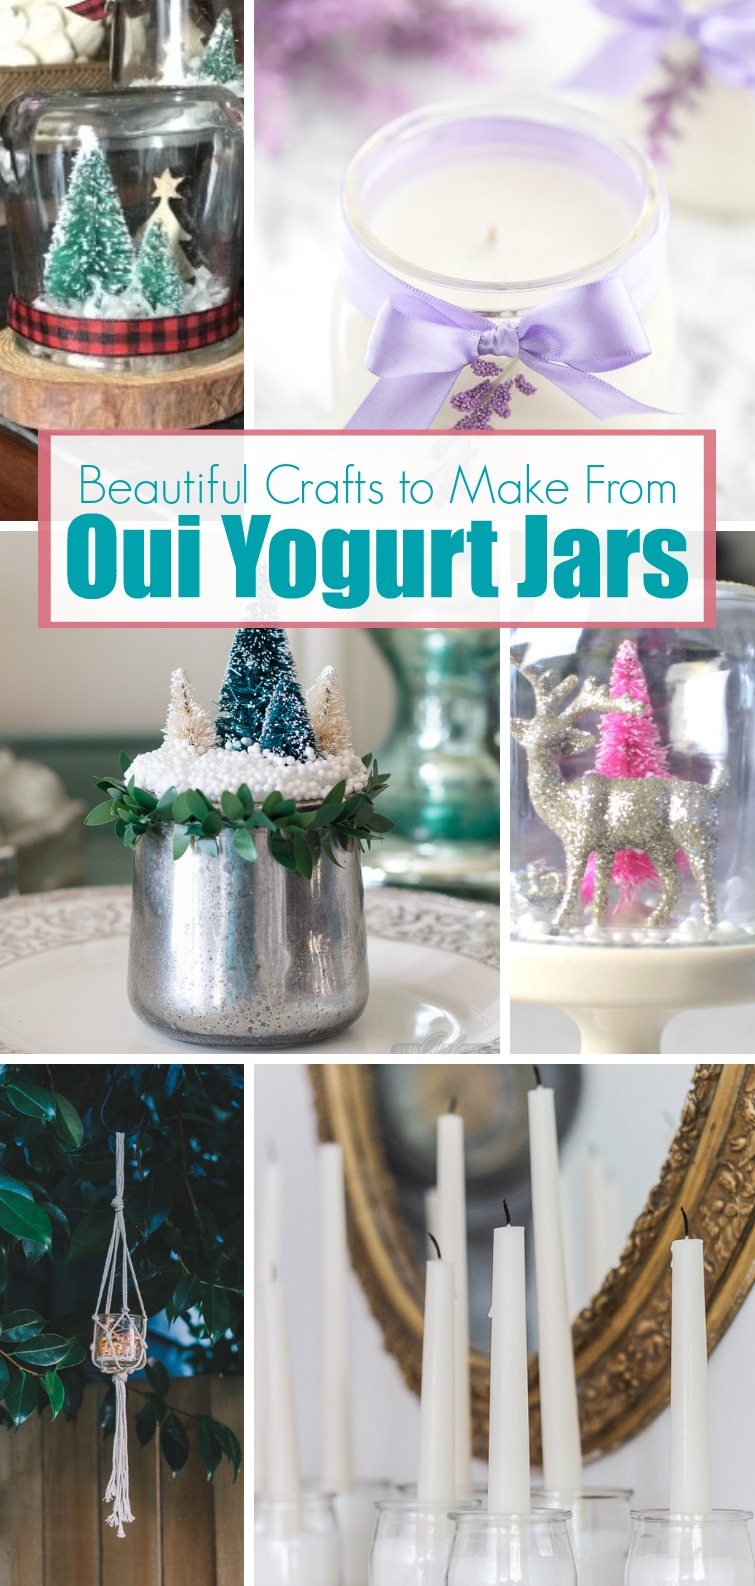 collage showing Beautiful Crafts You Can Make with a Oui Yogurt Jar